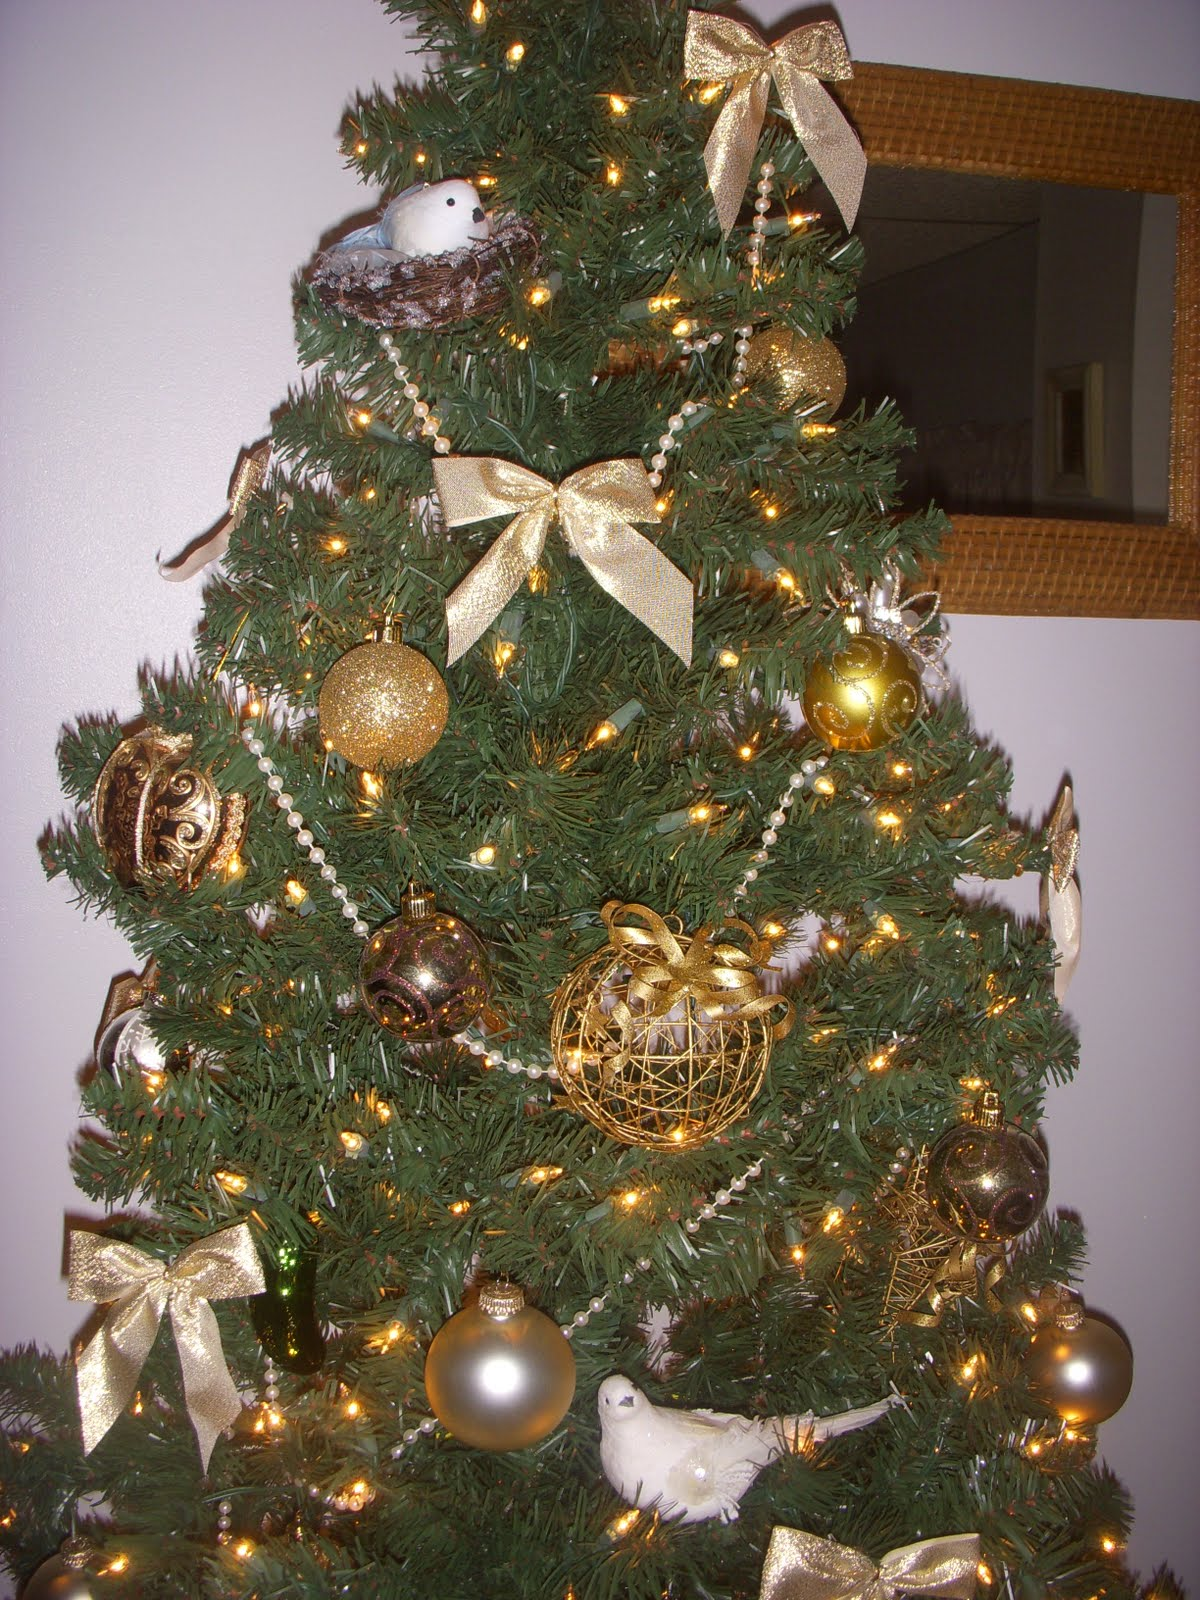 Schnelle: Our Classy Christmas Tree